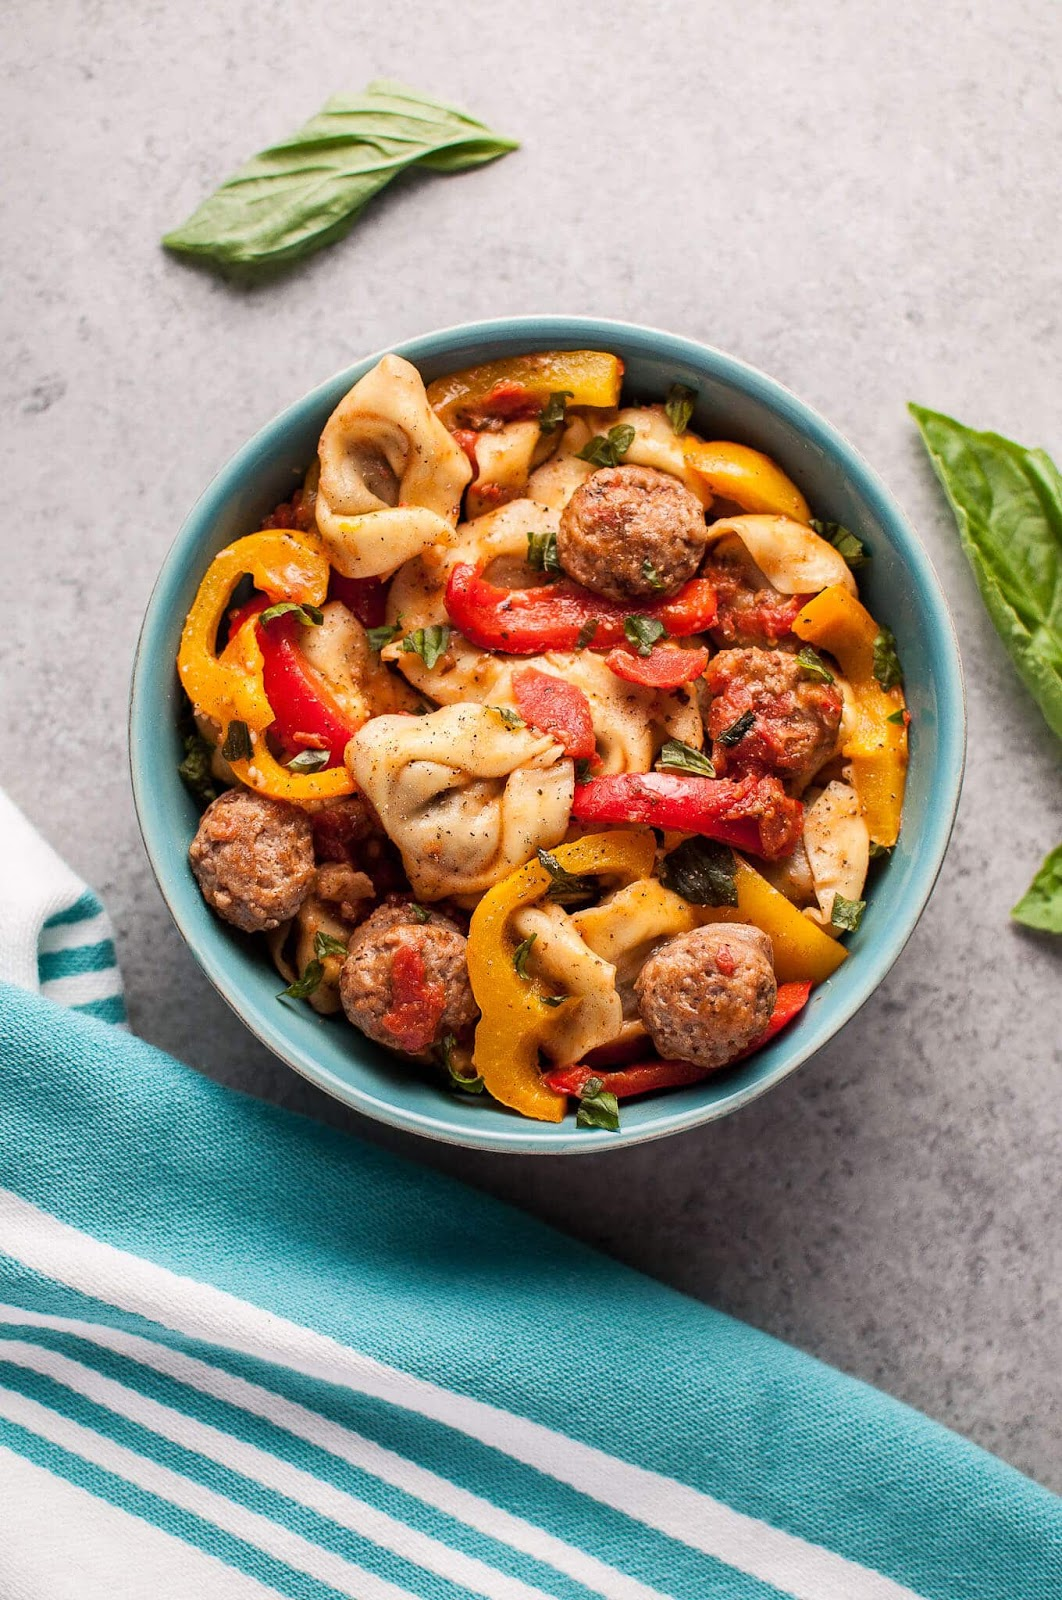 Tortellini with sausage and peppers